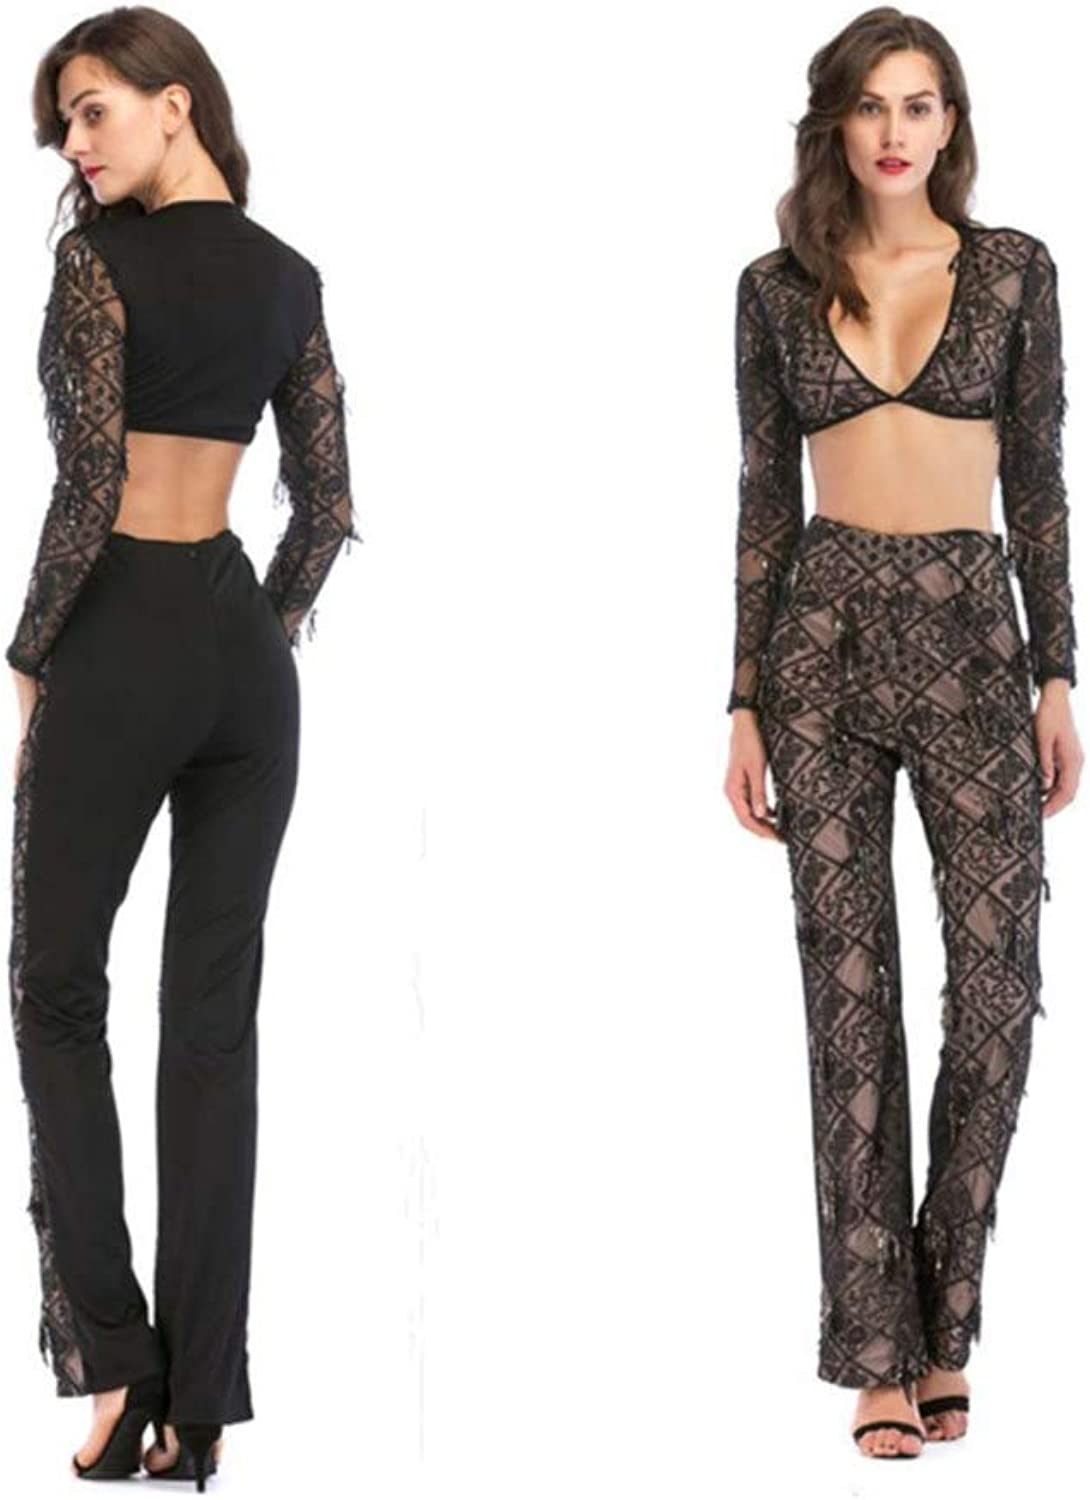 SPFAZJ 2019 New European and American Women's TwoPiece Sequins Sexy Suit Trousers